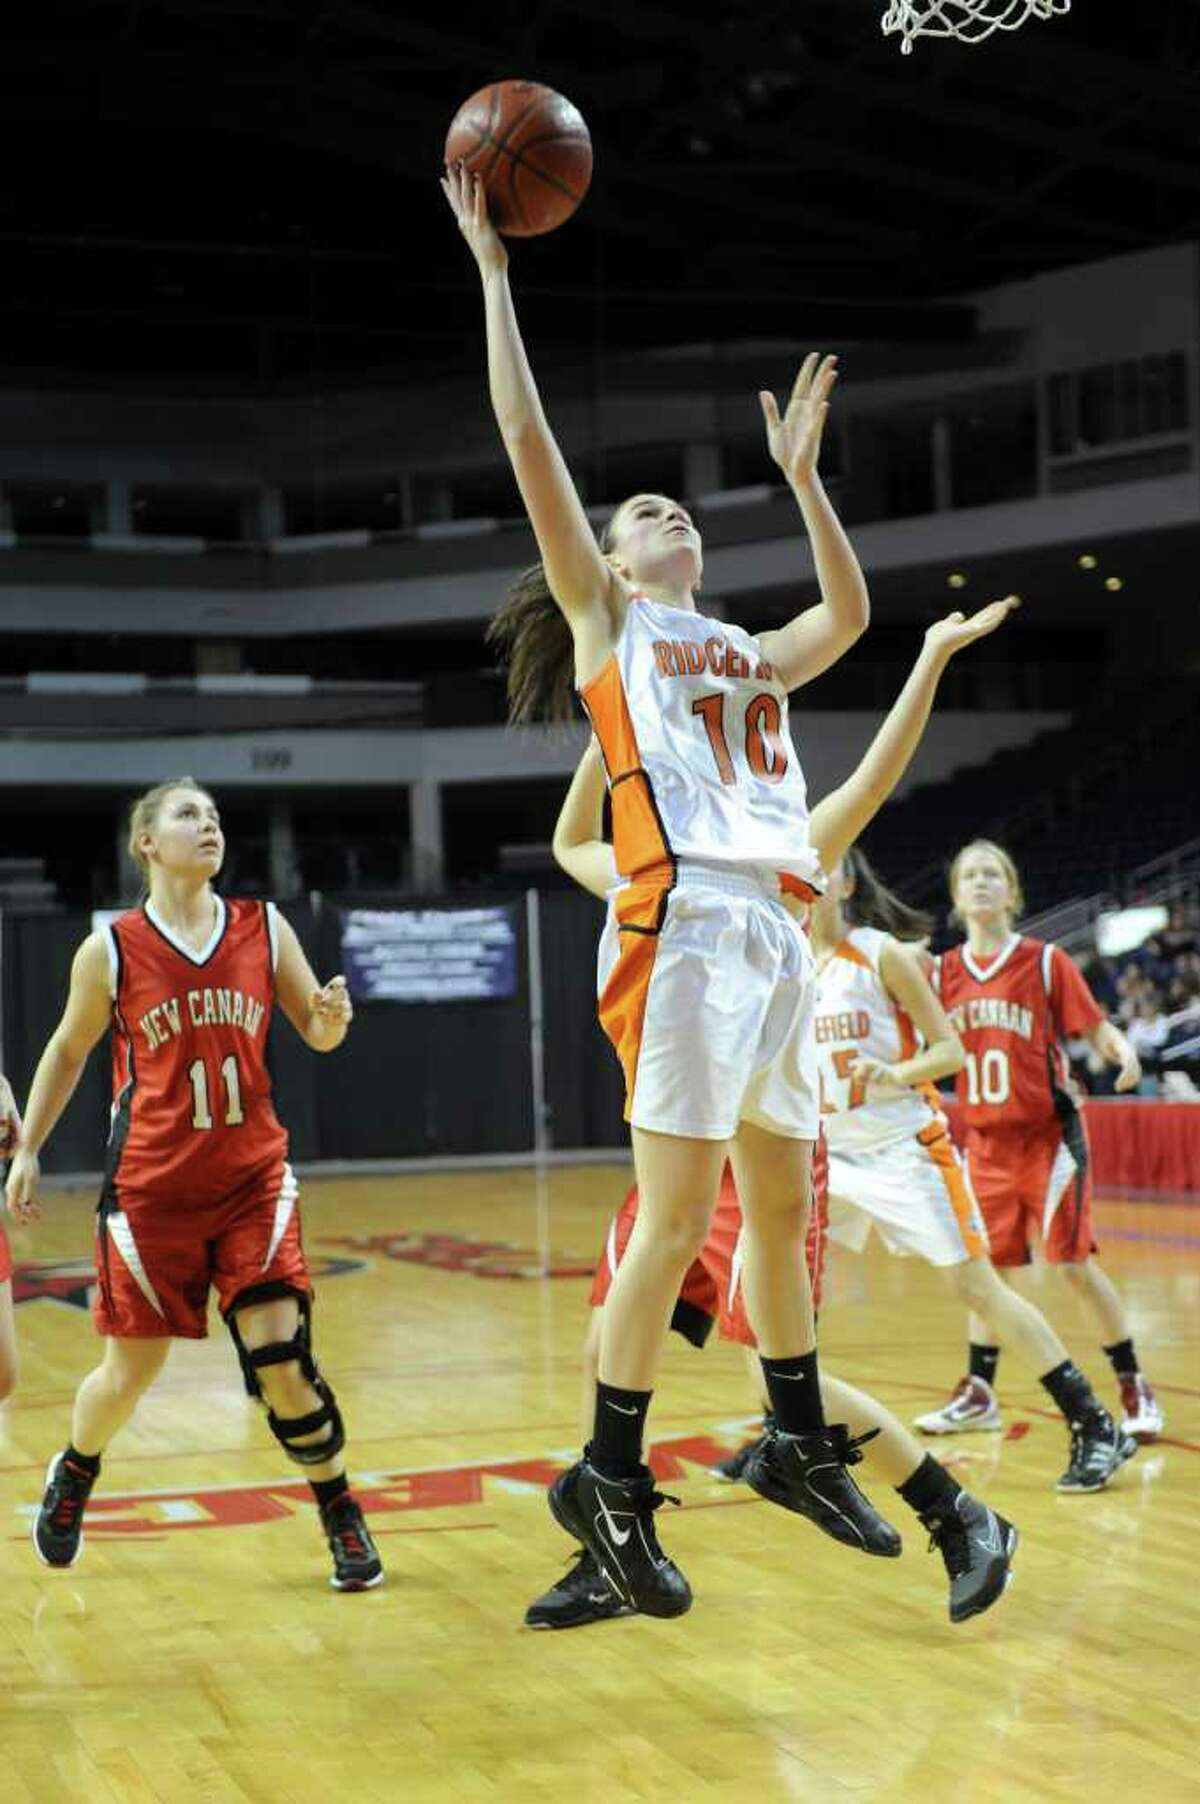 Ridgefield's Kathryn Cholko takes a shot during Tuesday's FCIAC girls basketball semifinal game at the Webster Bank Arena at Harbor Yard on Feburary 22, 2011.